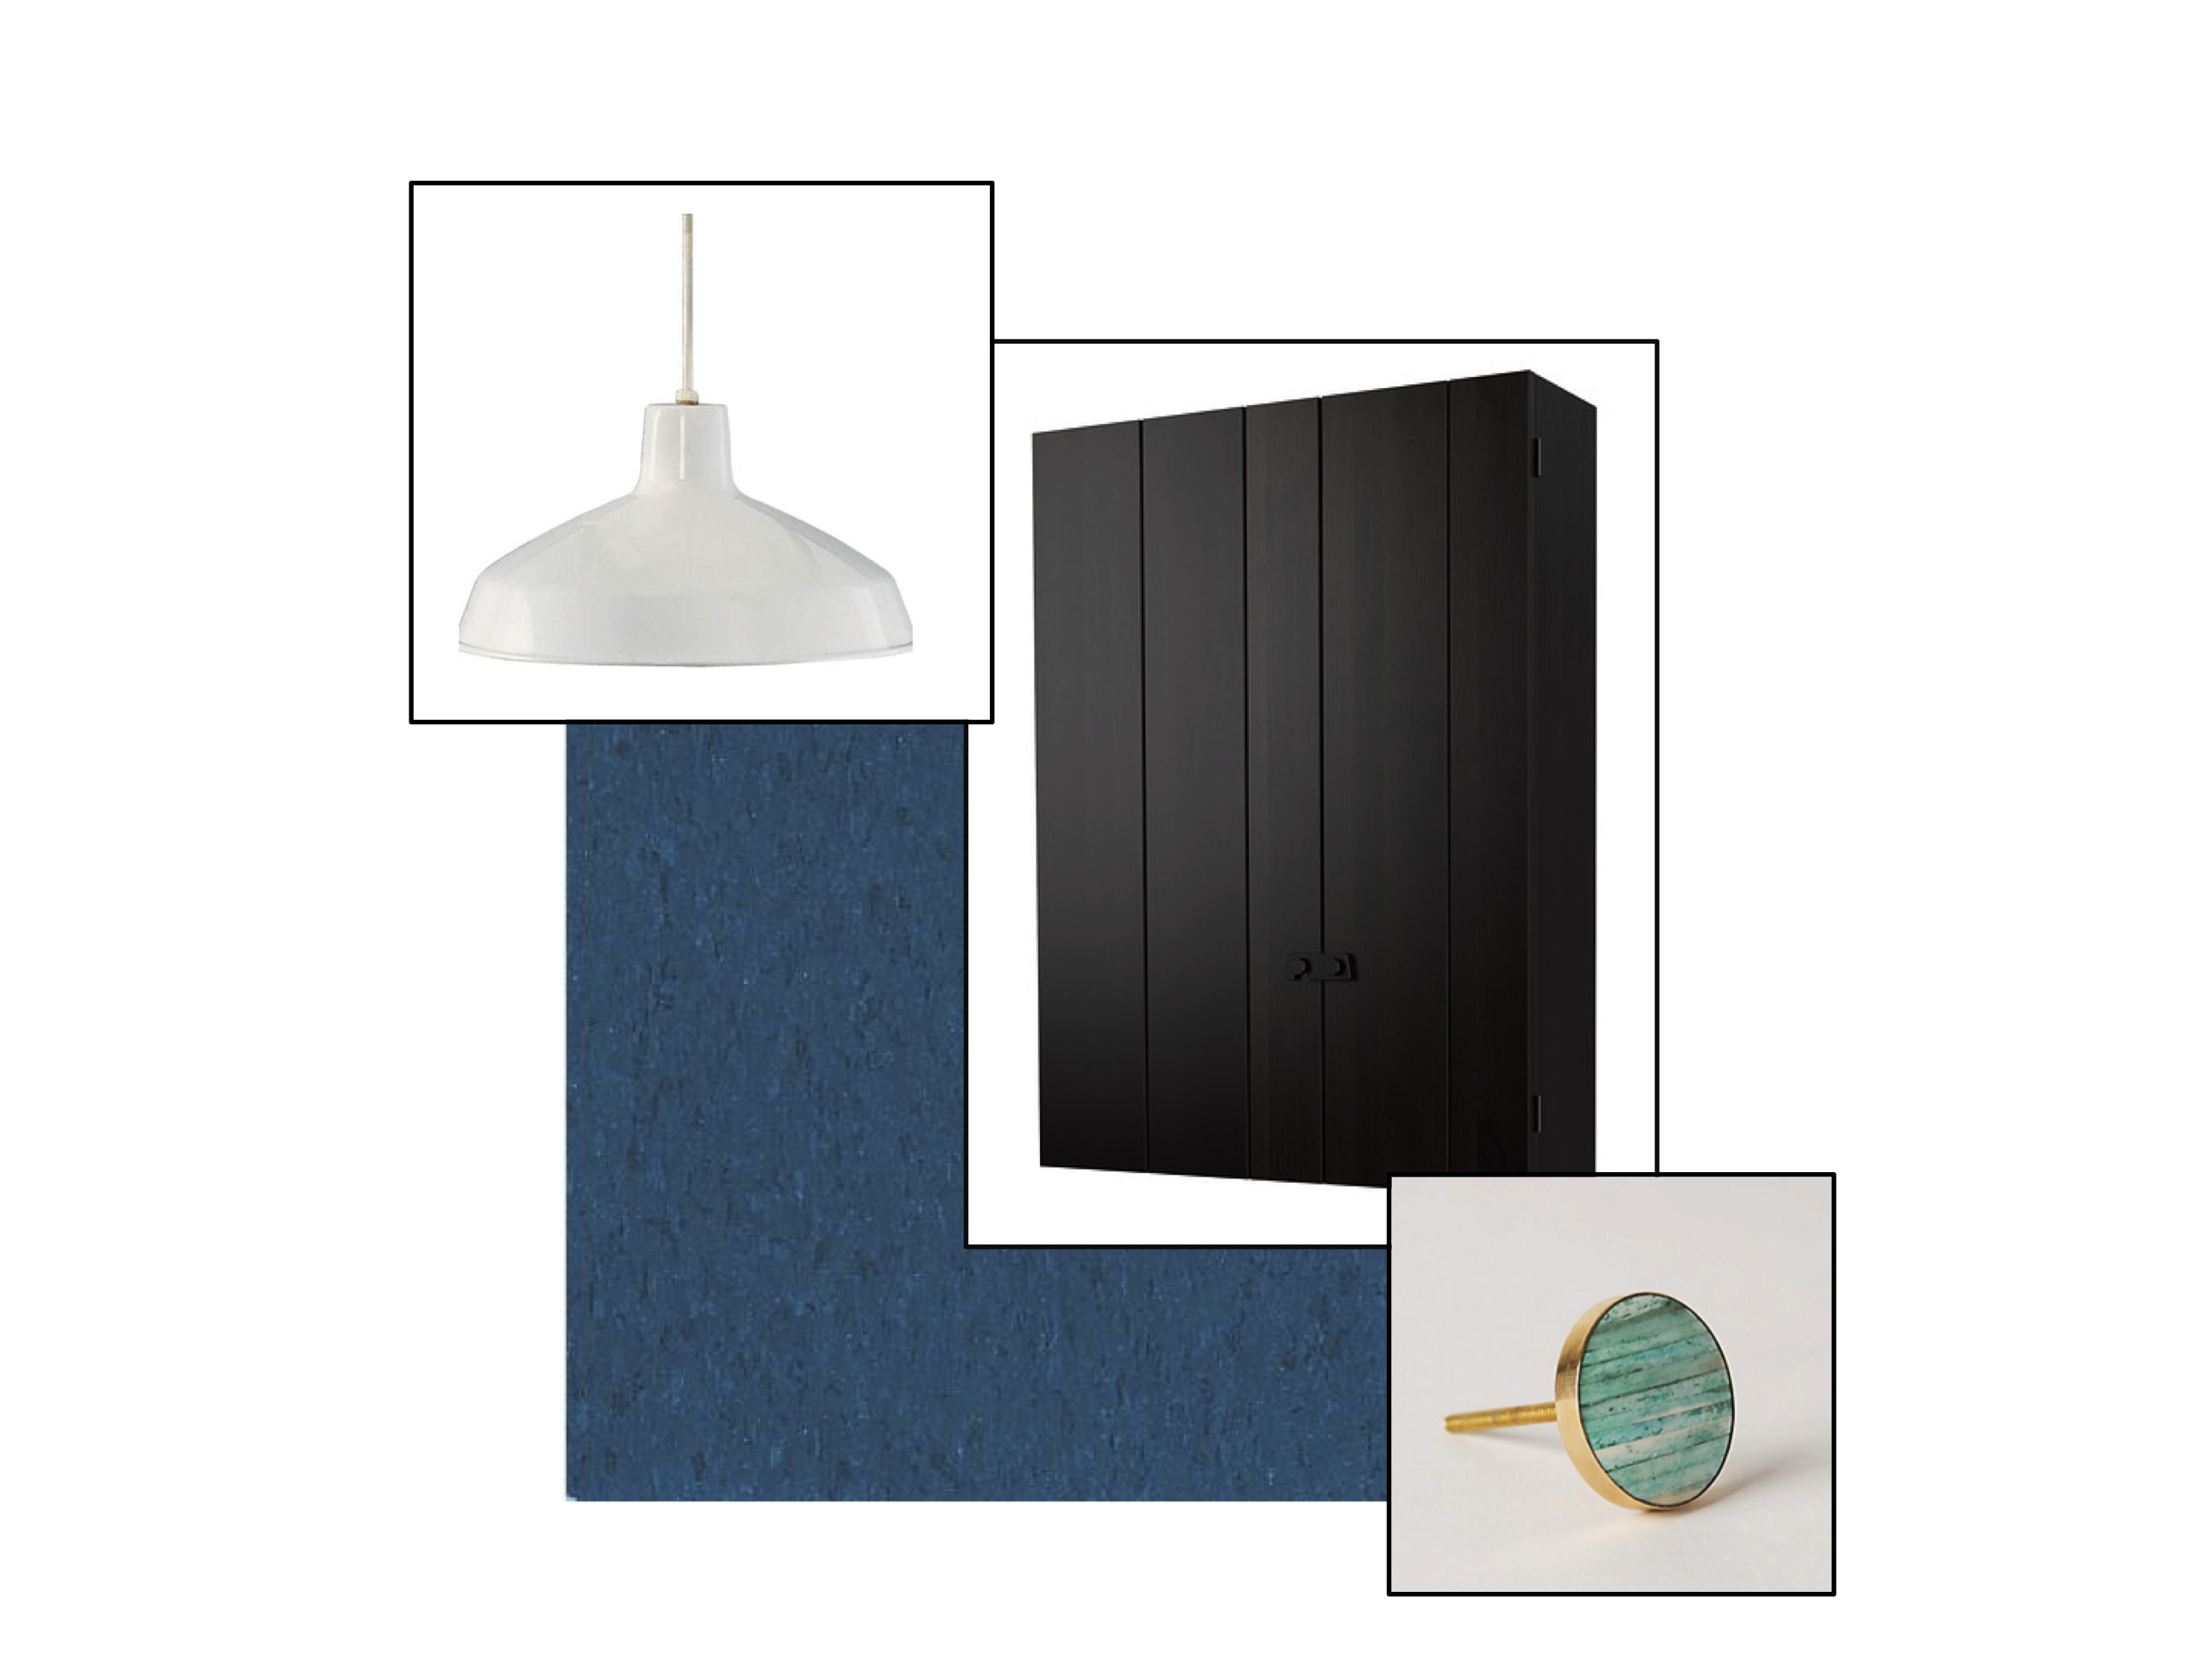 Clockwise from top left: White pendant light; IKEA cupboard; green and gold knobs; VCT tiles in Gentian Blue